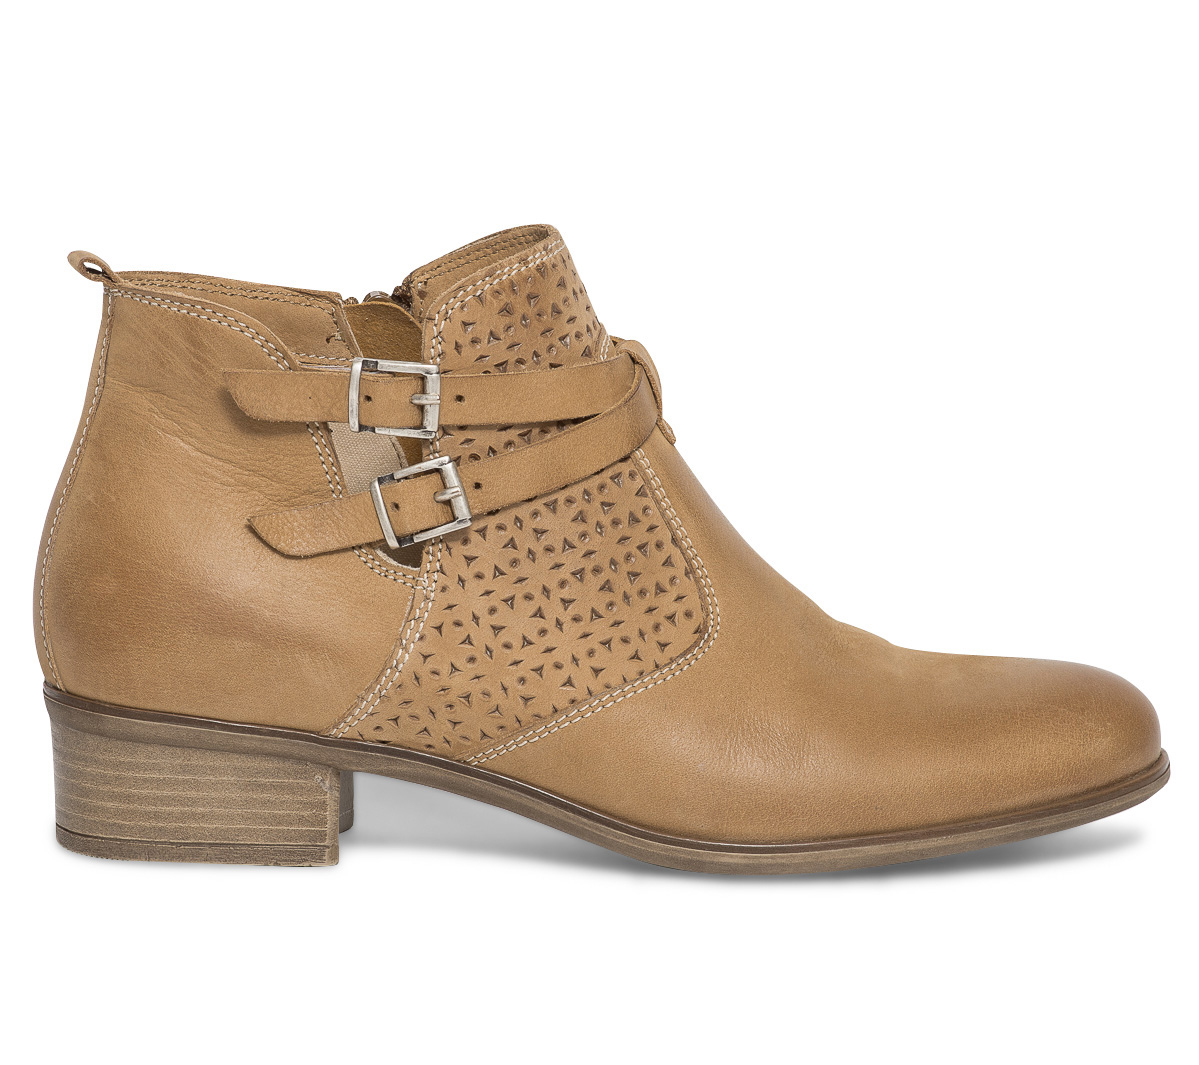 Cuir Camel Boots Cut Eram Out CBxedo